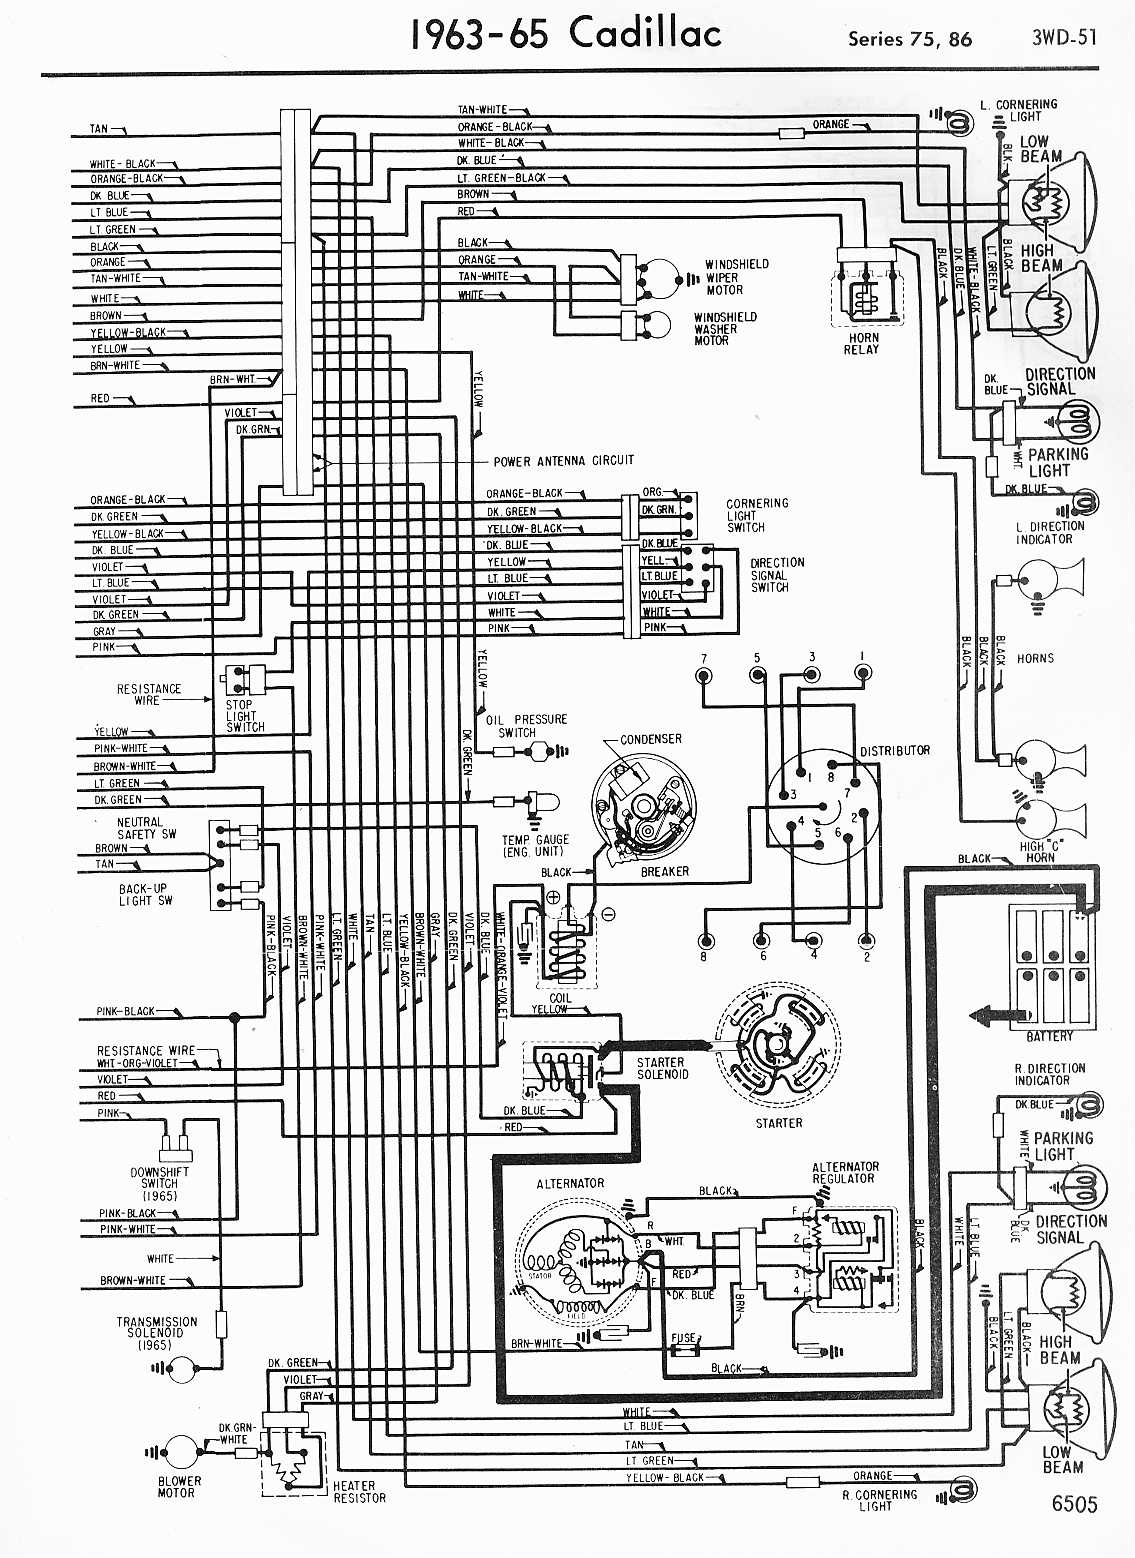 MWireCadi65_3WD 051 2000cad eldorado wiring diagram,eldorado \u2022 j squared co  at fashall.co